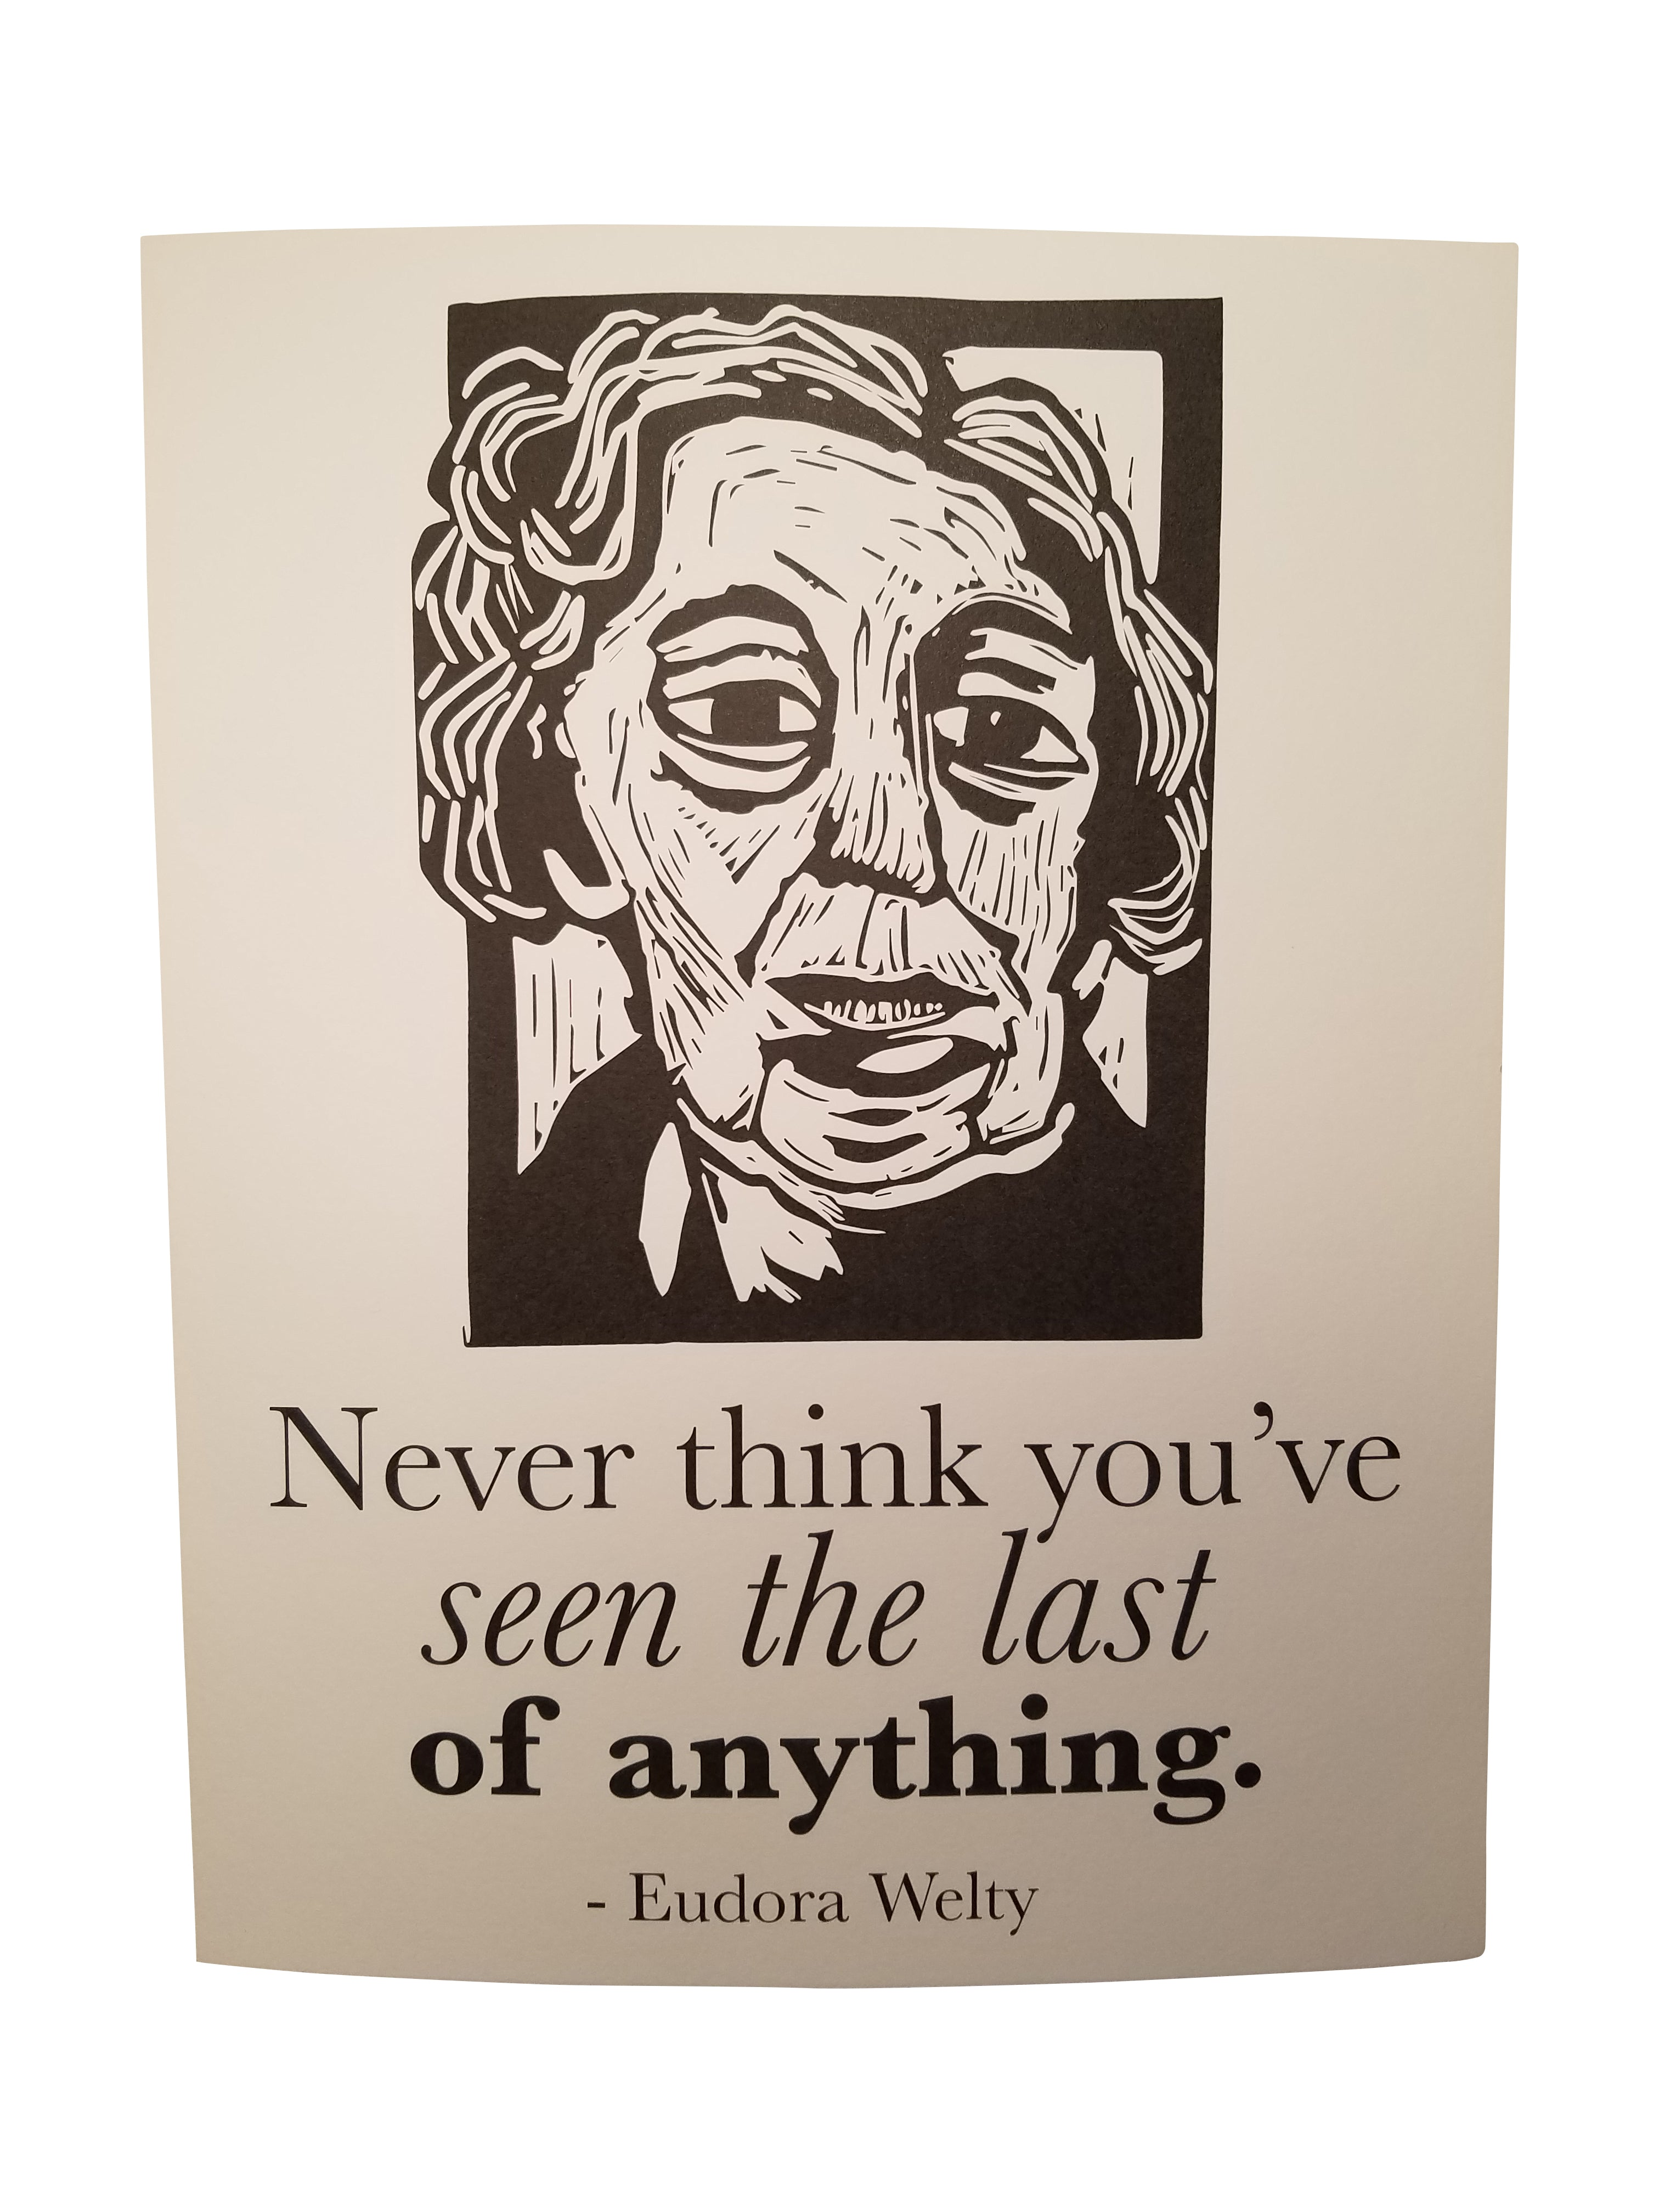 Eudora Welty Art Print poster with quote Literary Gift by Eastgrove Studio